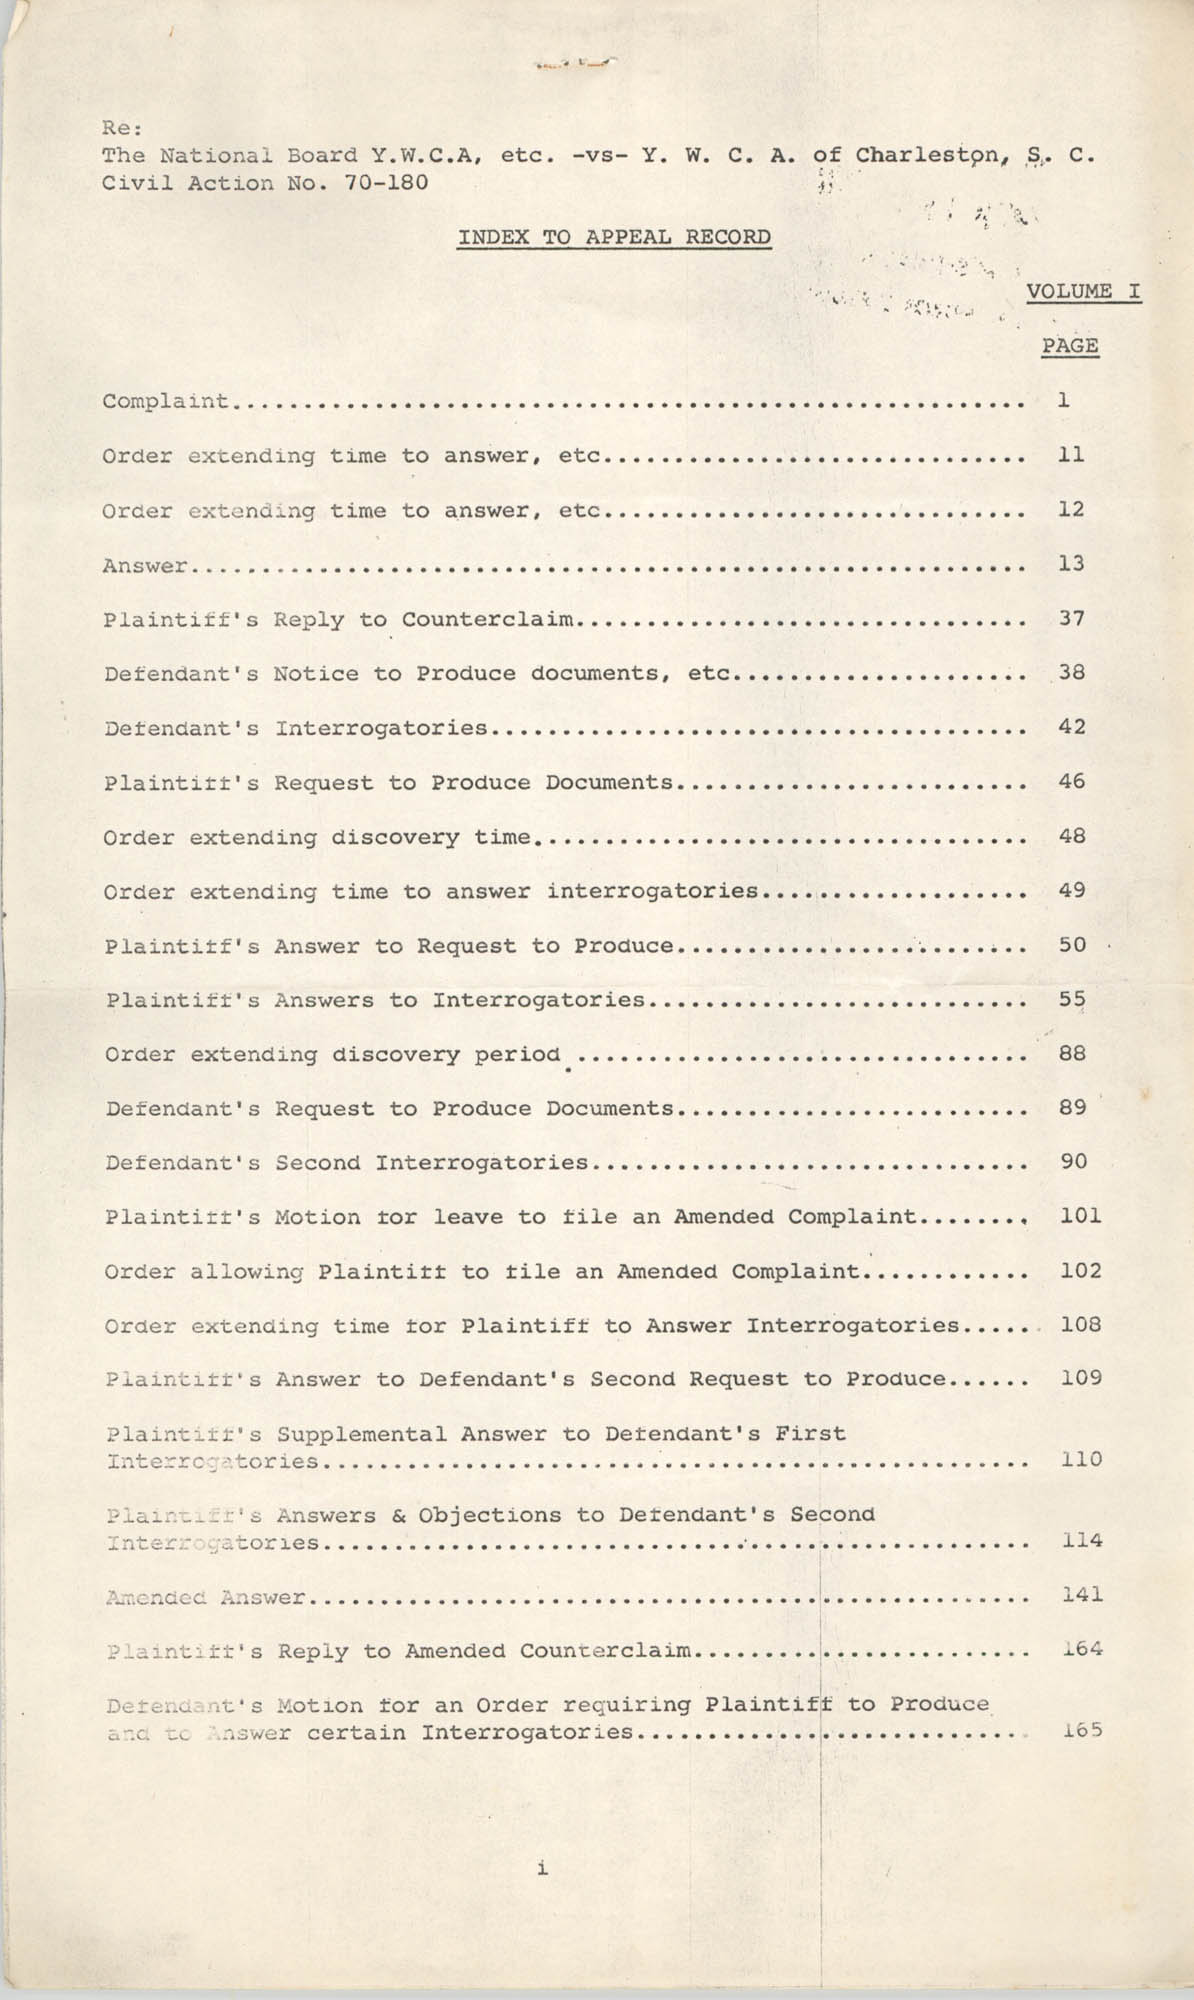 Index to Appeal Record, National Board of the Y.W.C.A. of U.S.A. vs. Y.W.C.A. of Charleston, S. C., Civil Action No. 70-180, Page 1